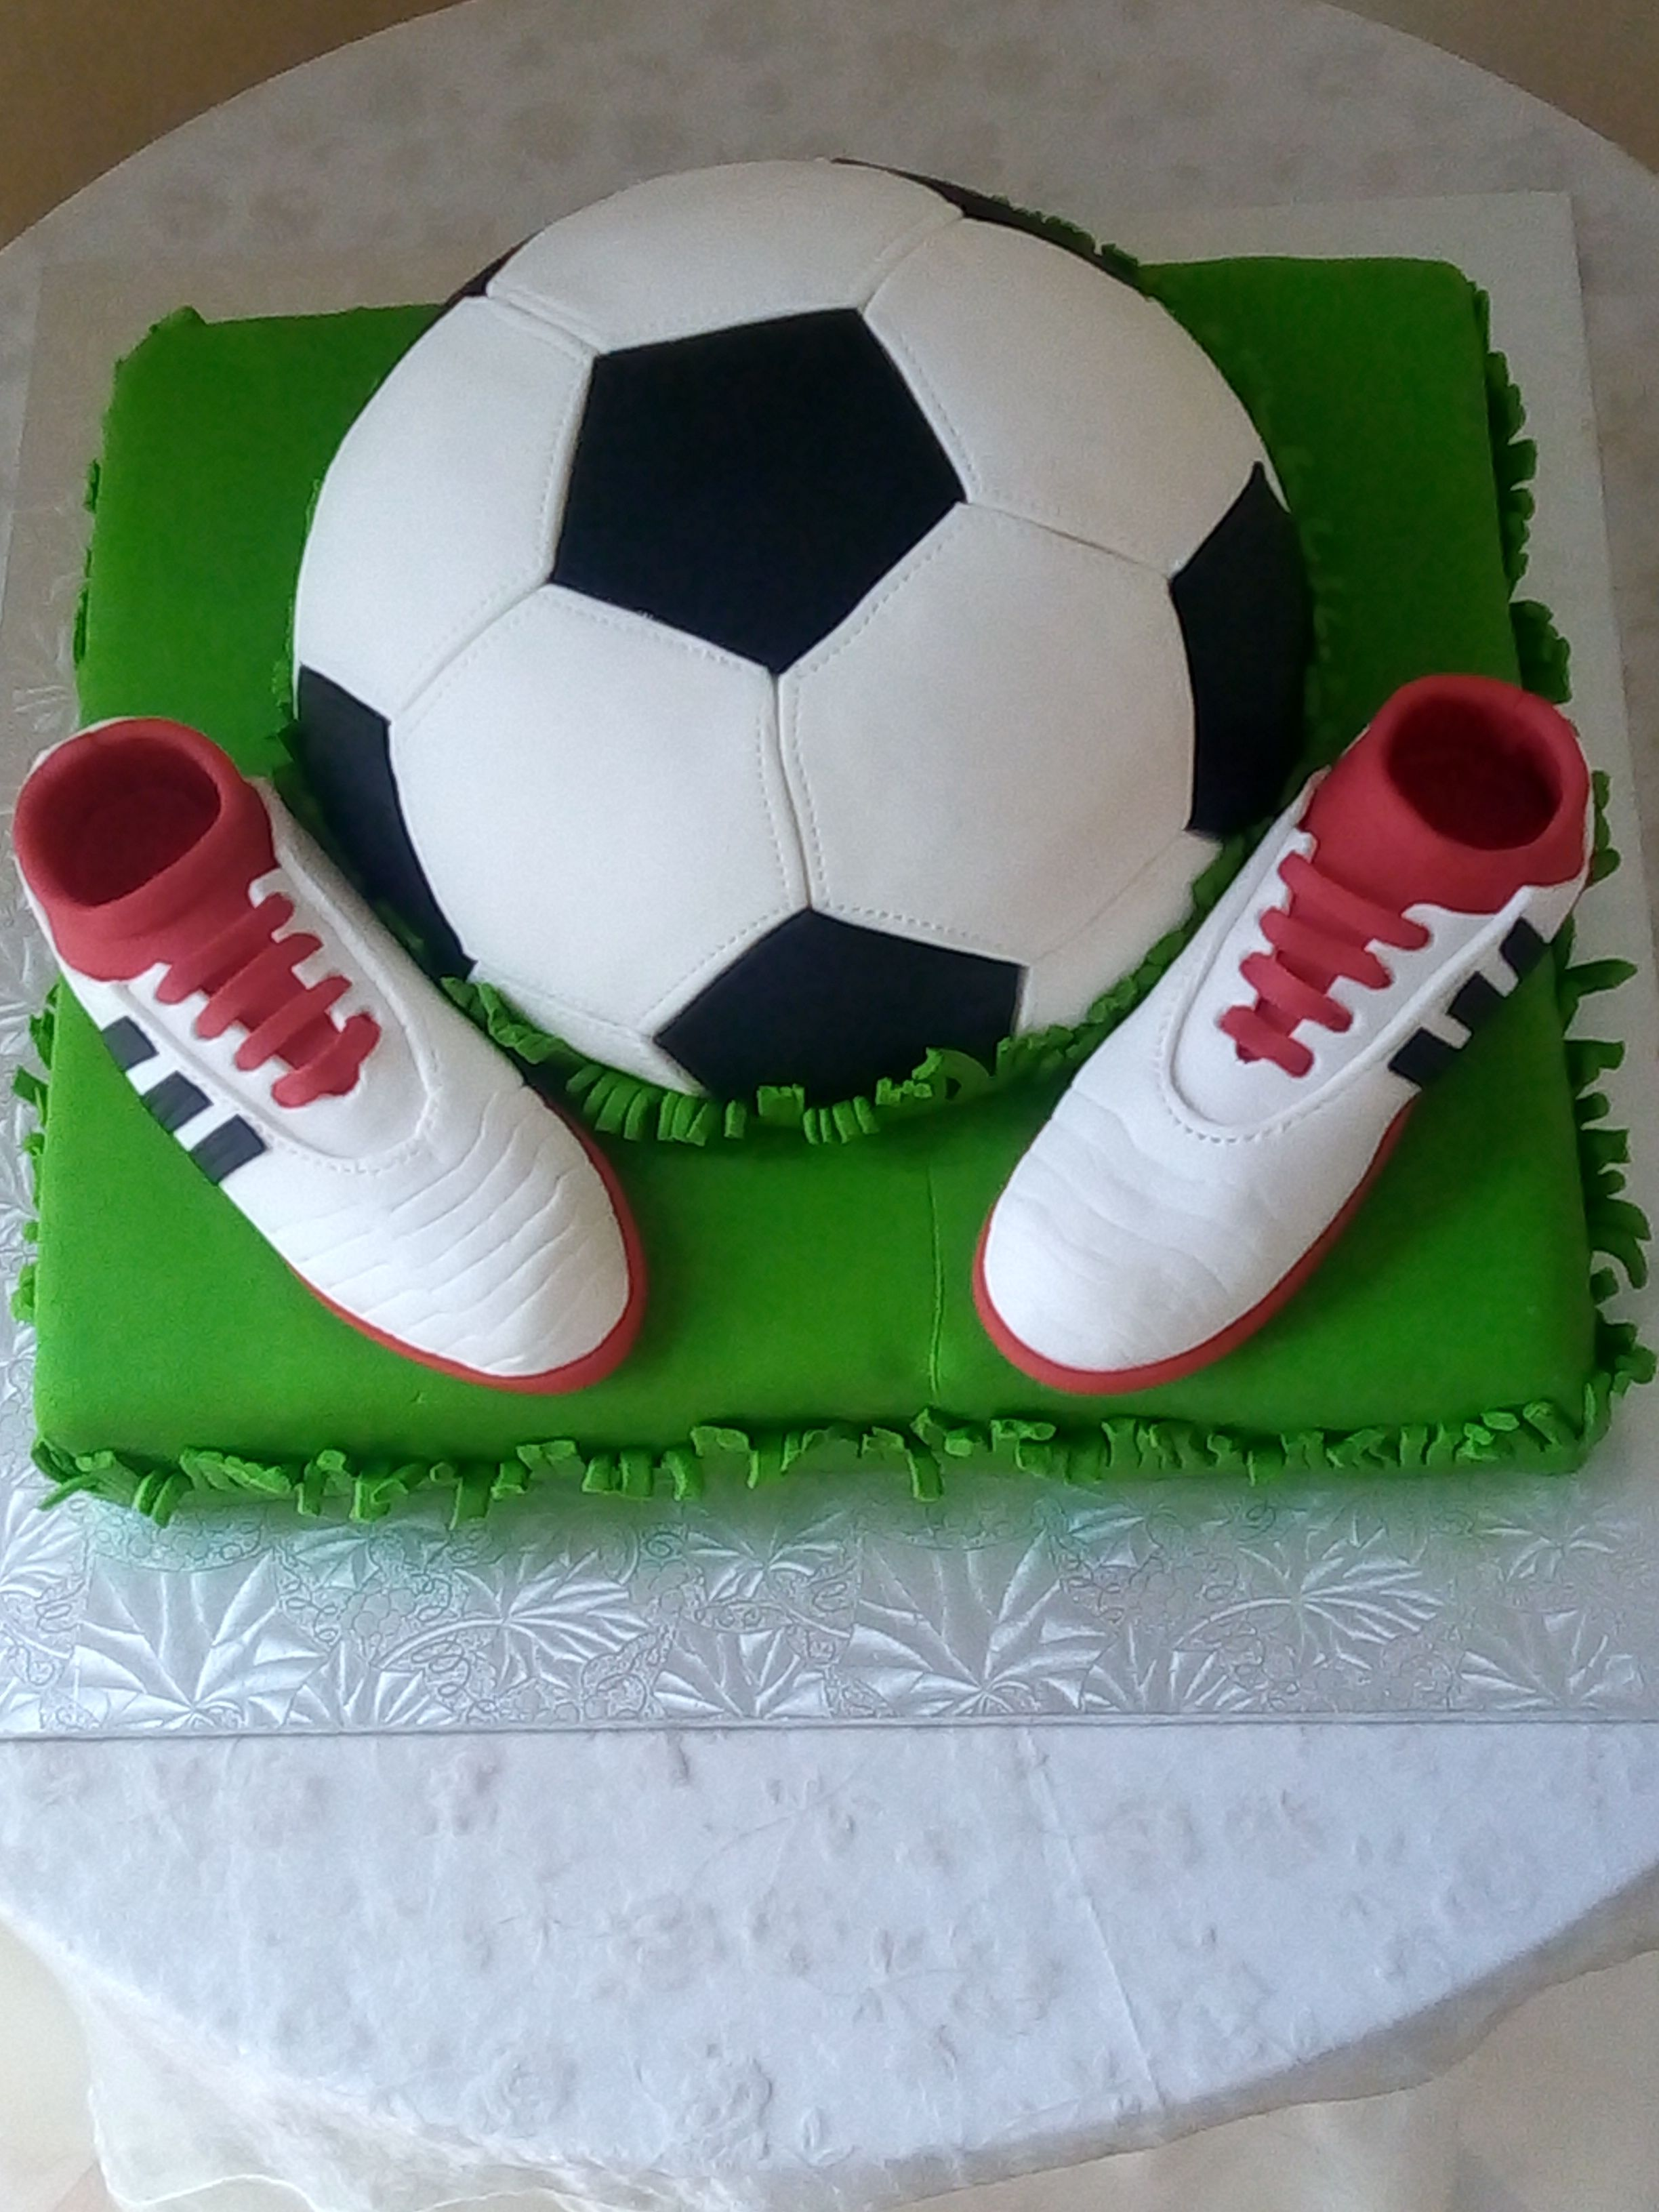 Soccer Cake With Soccer Ball And Soccer Boots Made From Fondant